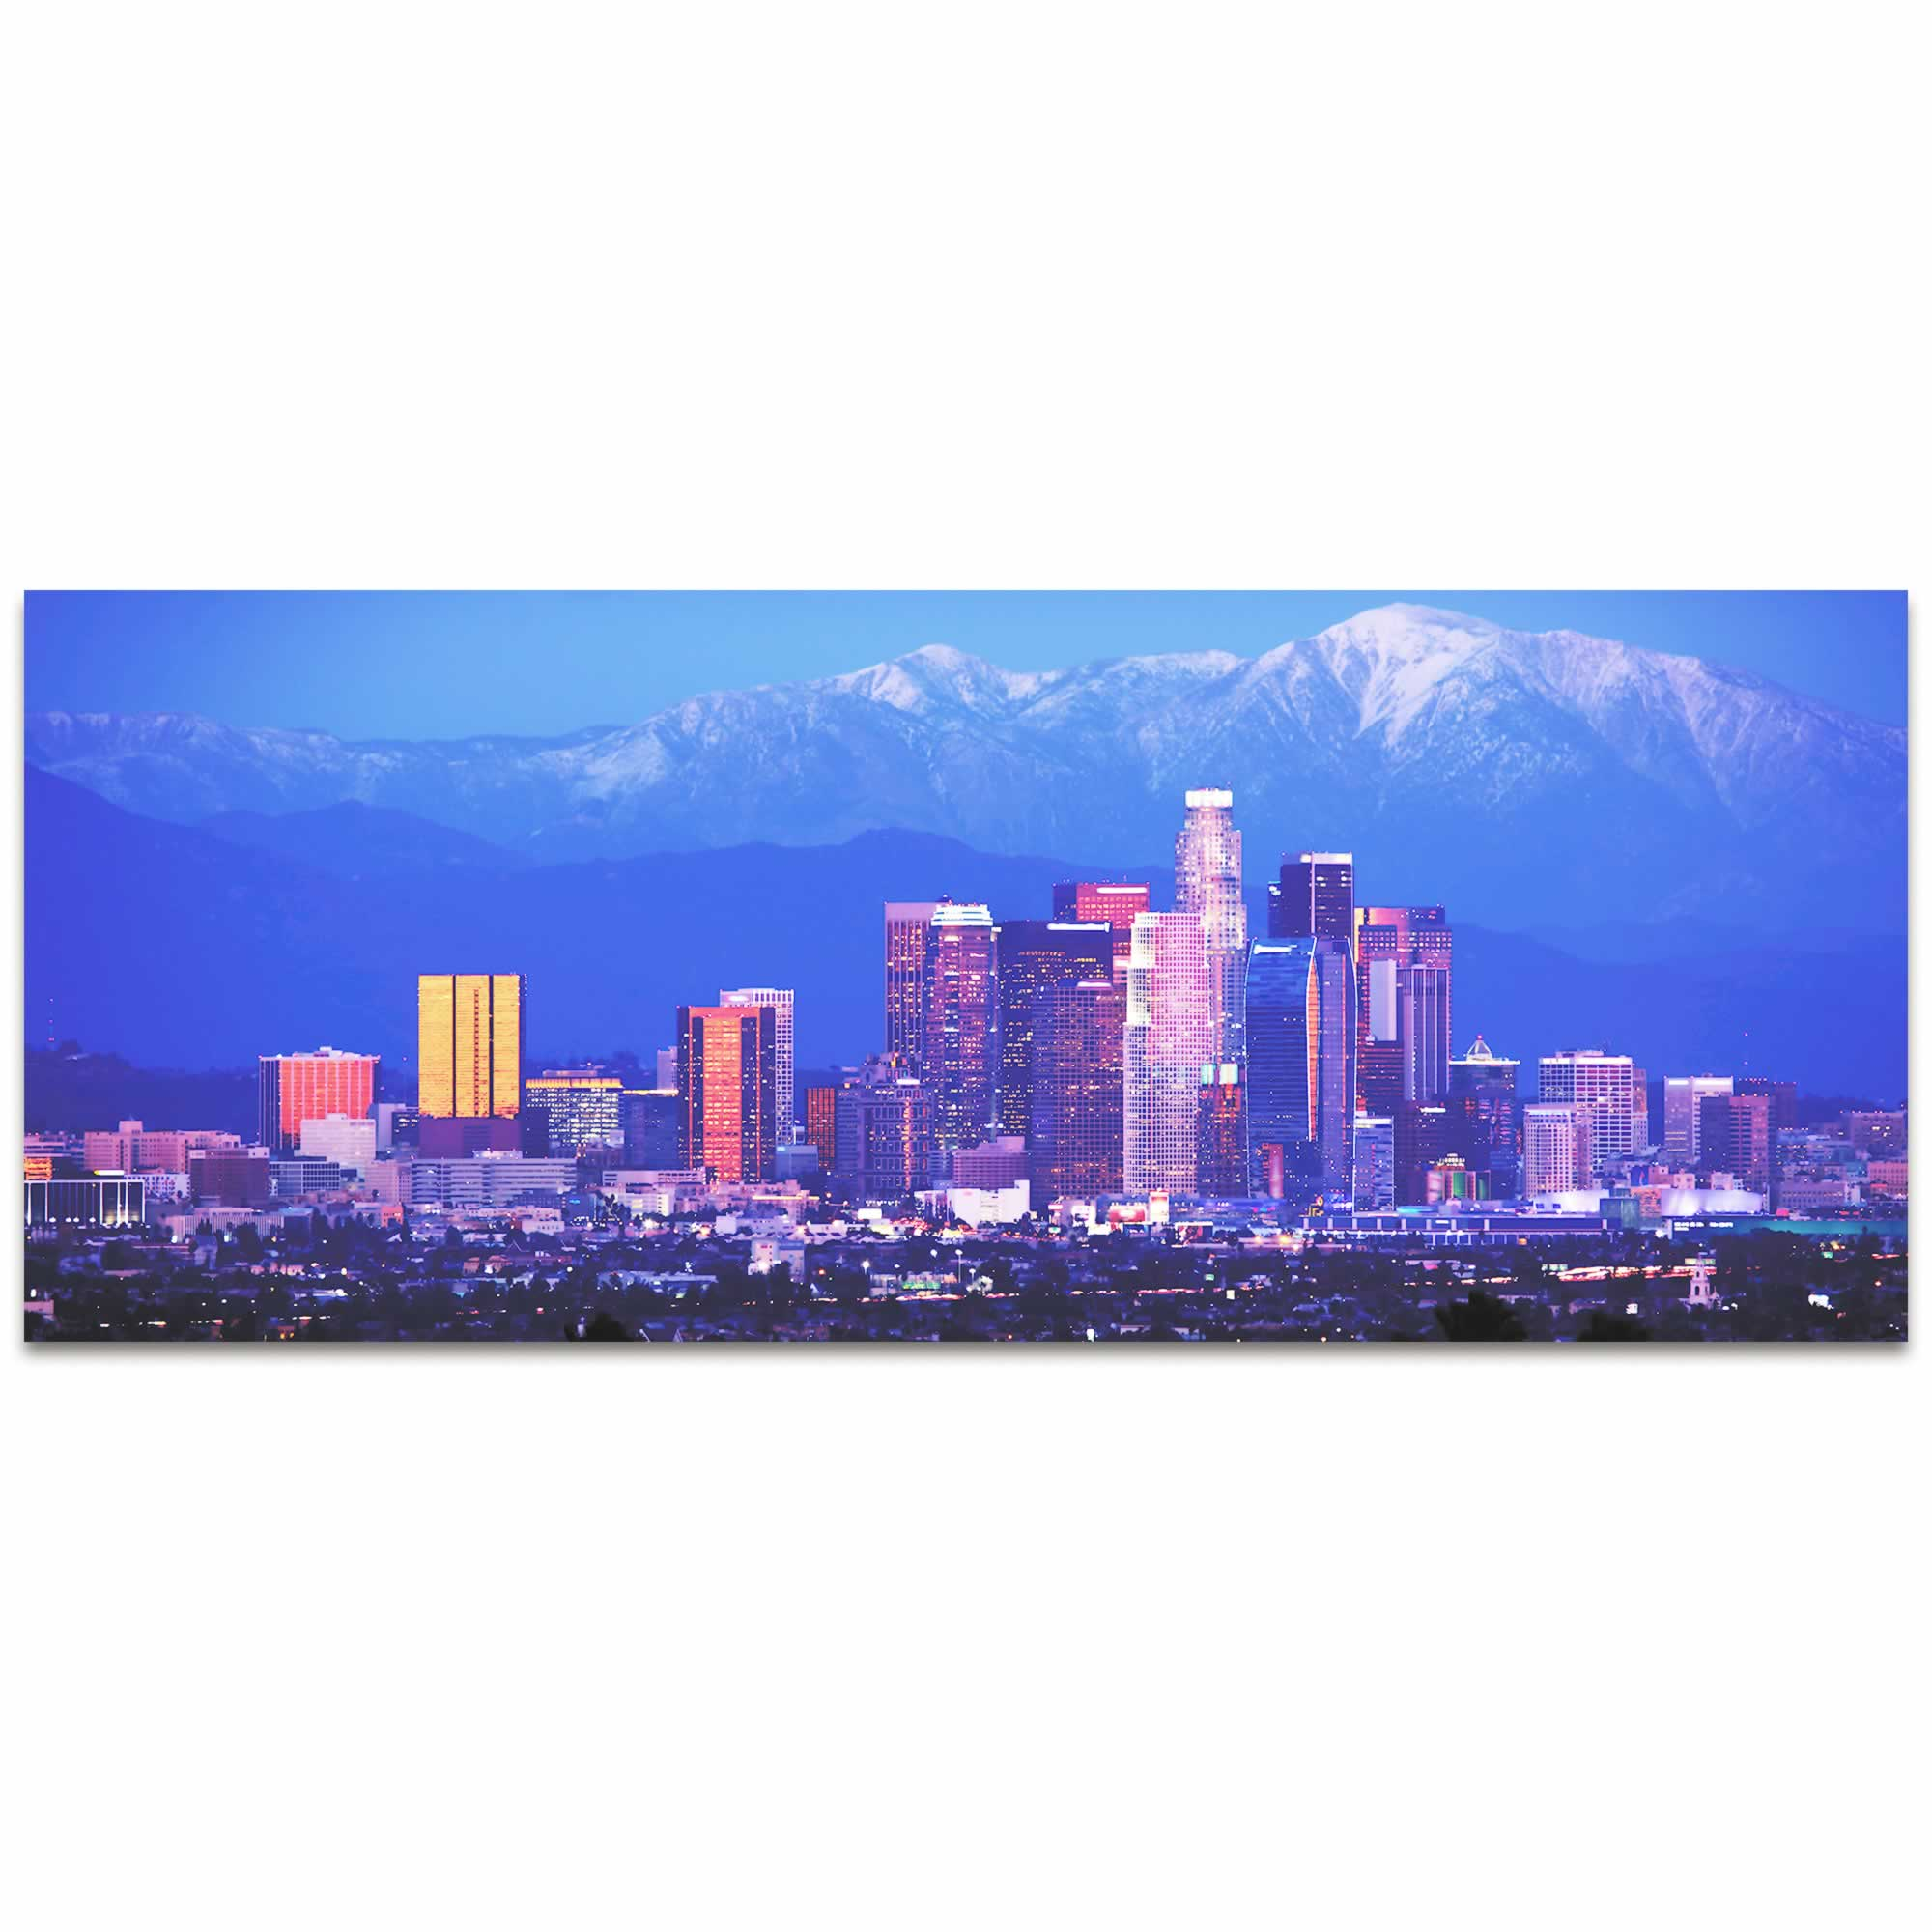 Los Angeles City Skyline - Urban Modern Art, Designer Home Decor, Cityscape Wall Artwork, Trendy Contemporary Art - Alternate View 2